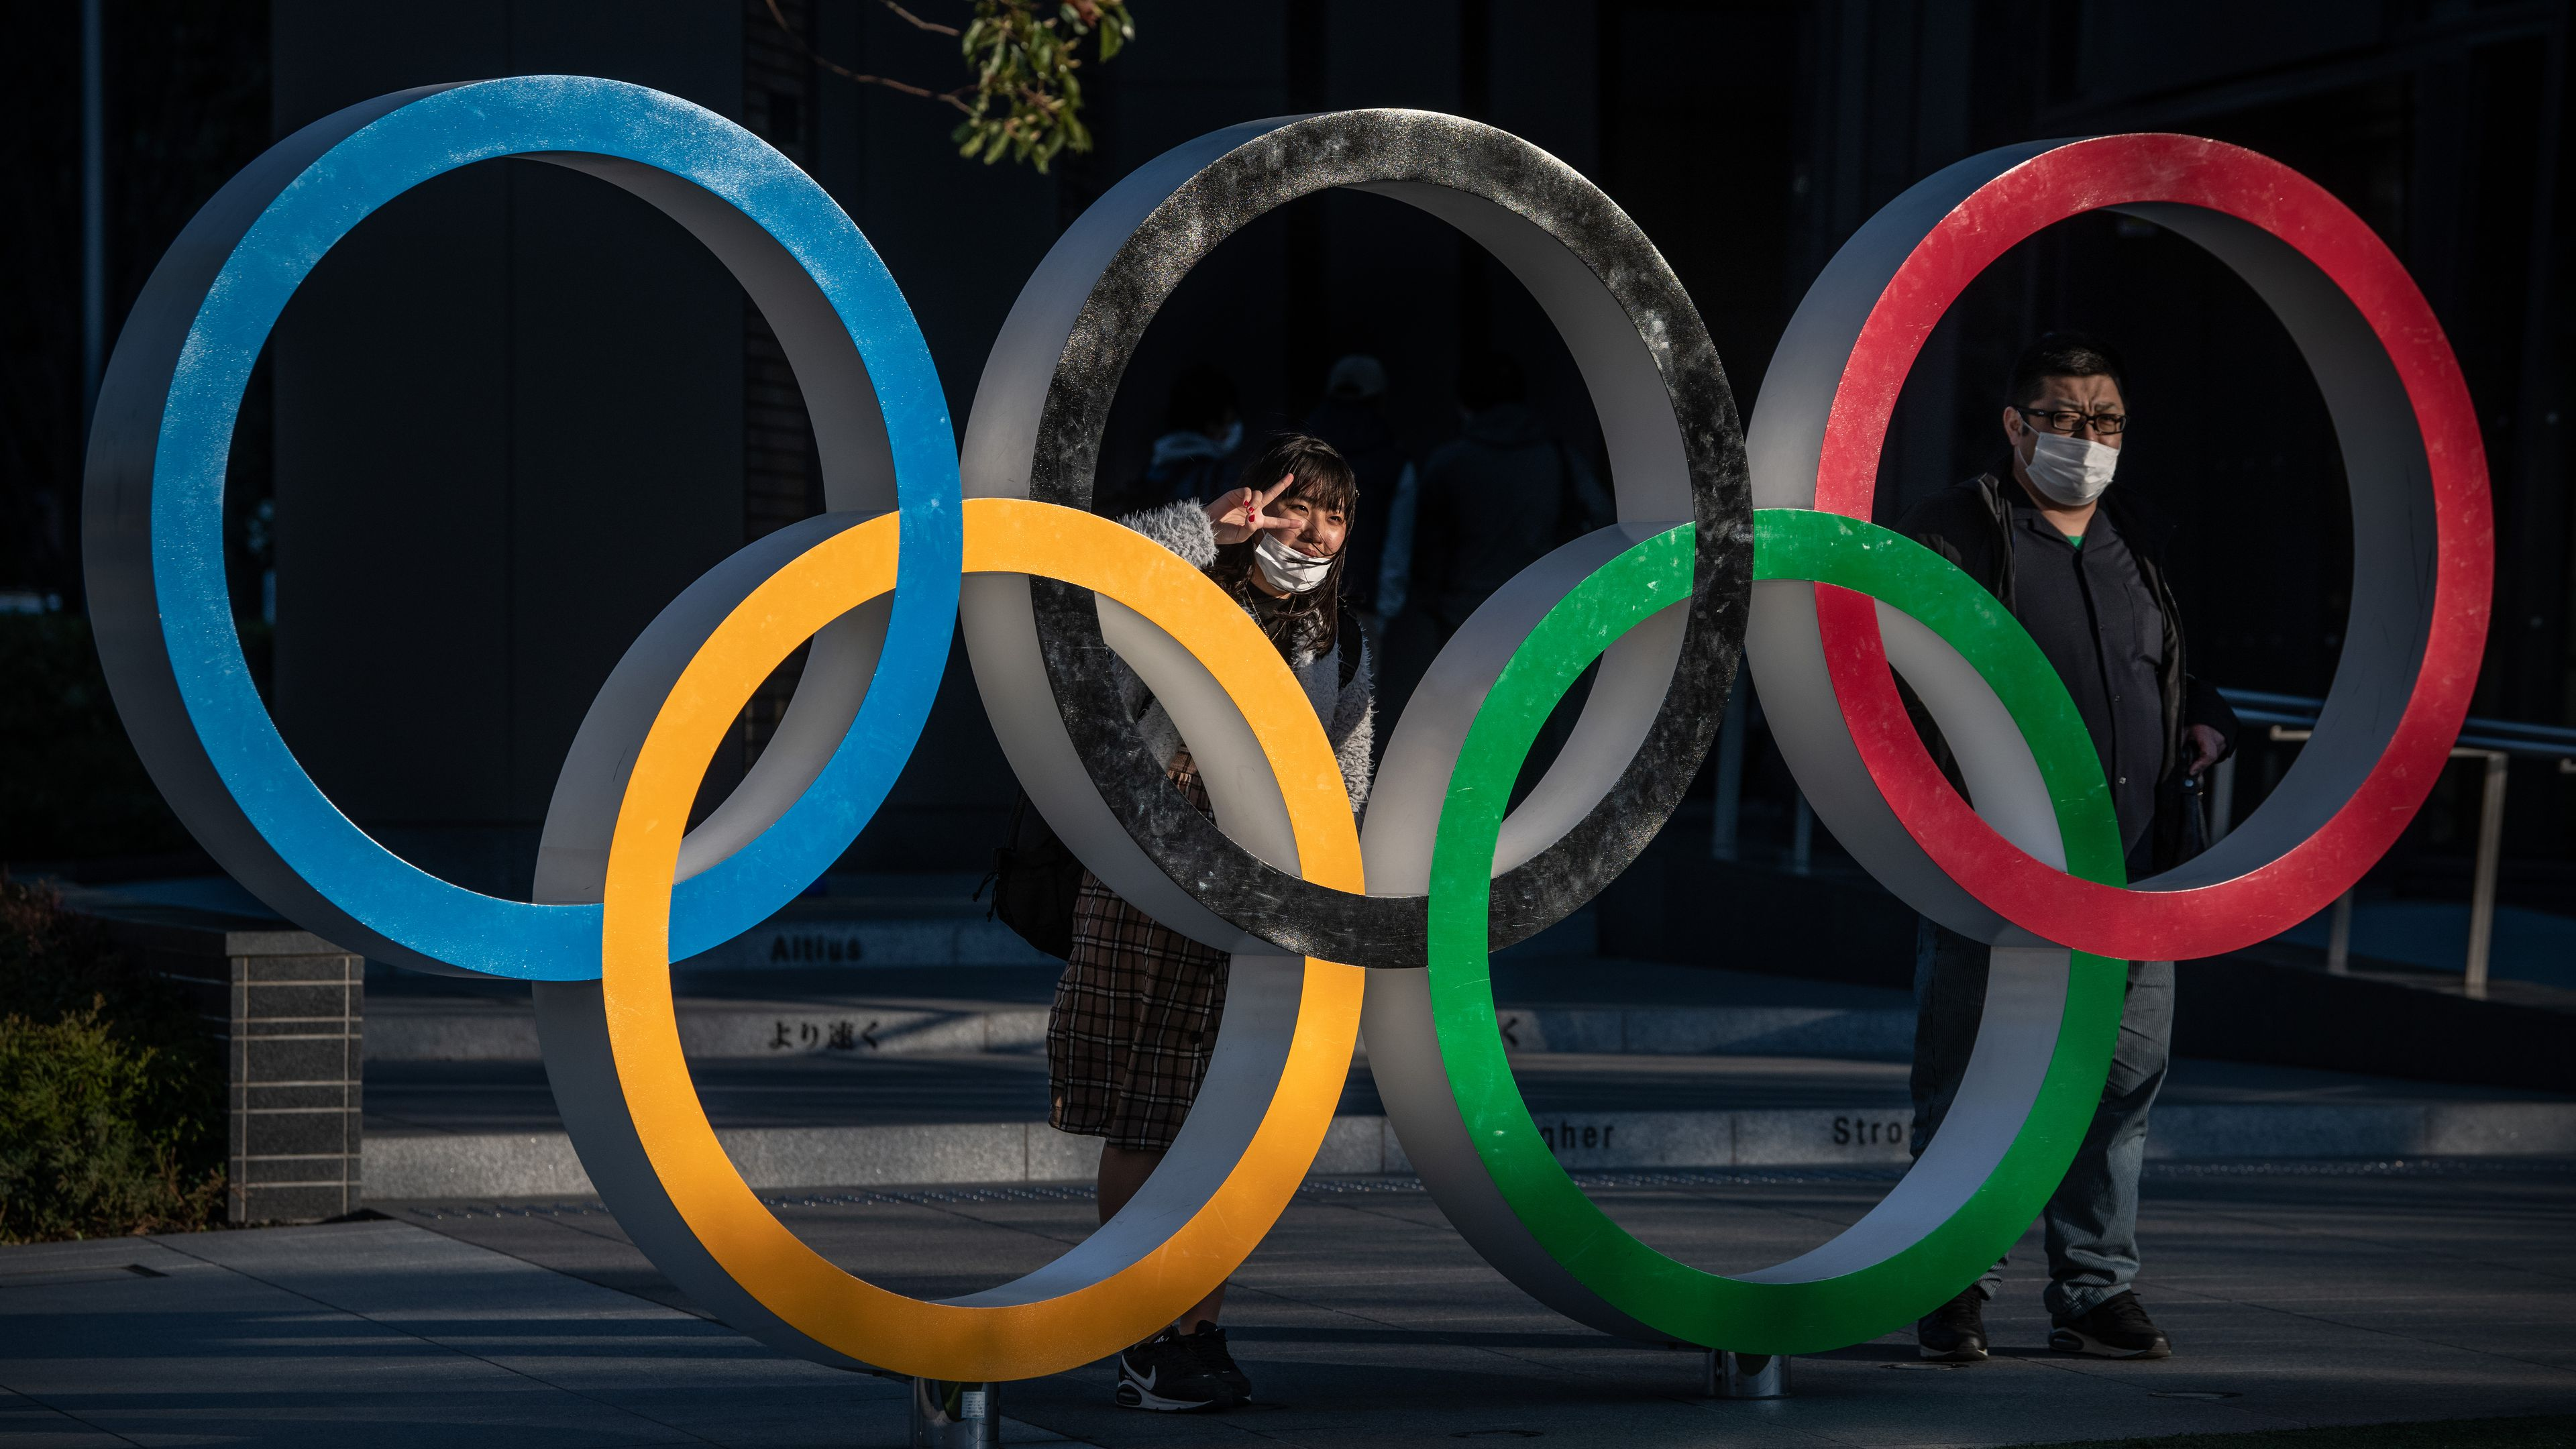 People wearing face masks pose for photographs next to Olympic Rings.